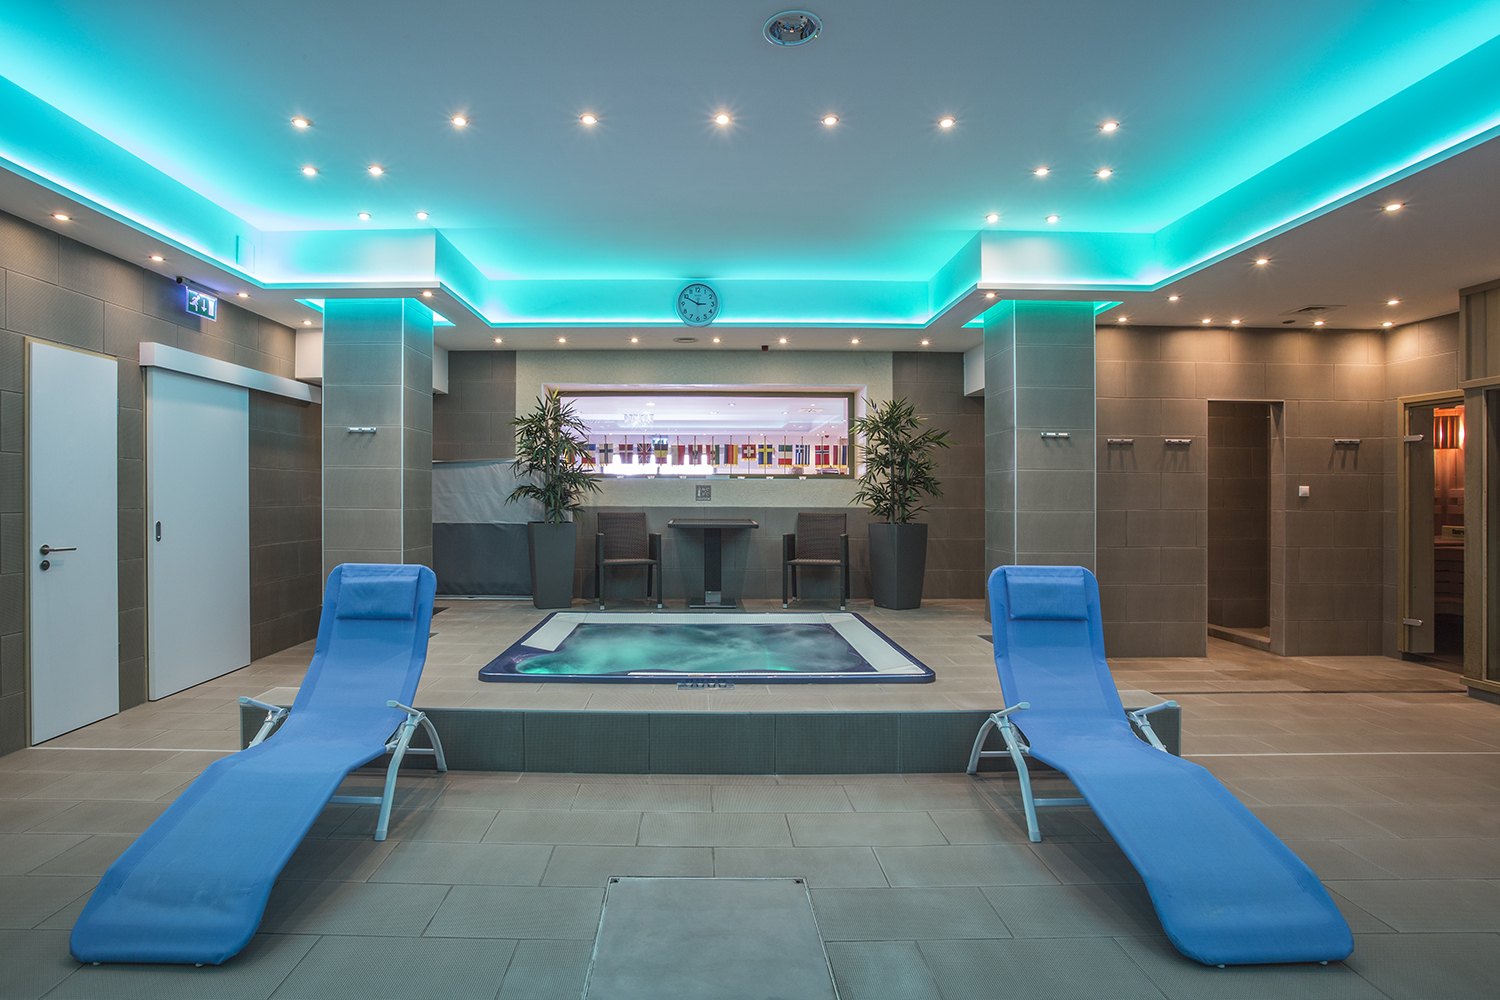 The spa centre wellness services in pictures for Wellness hotel